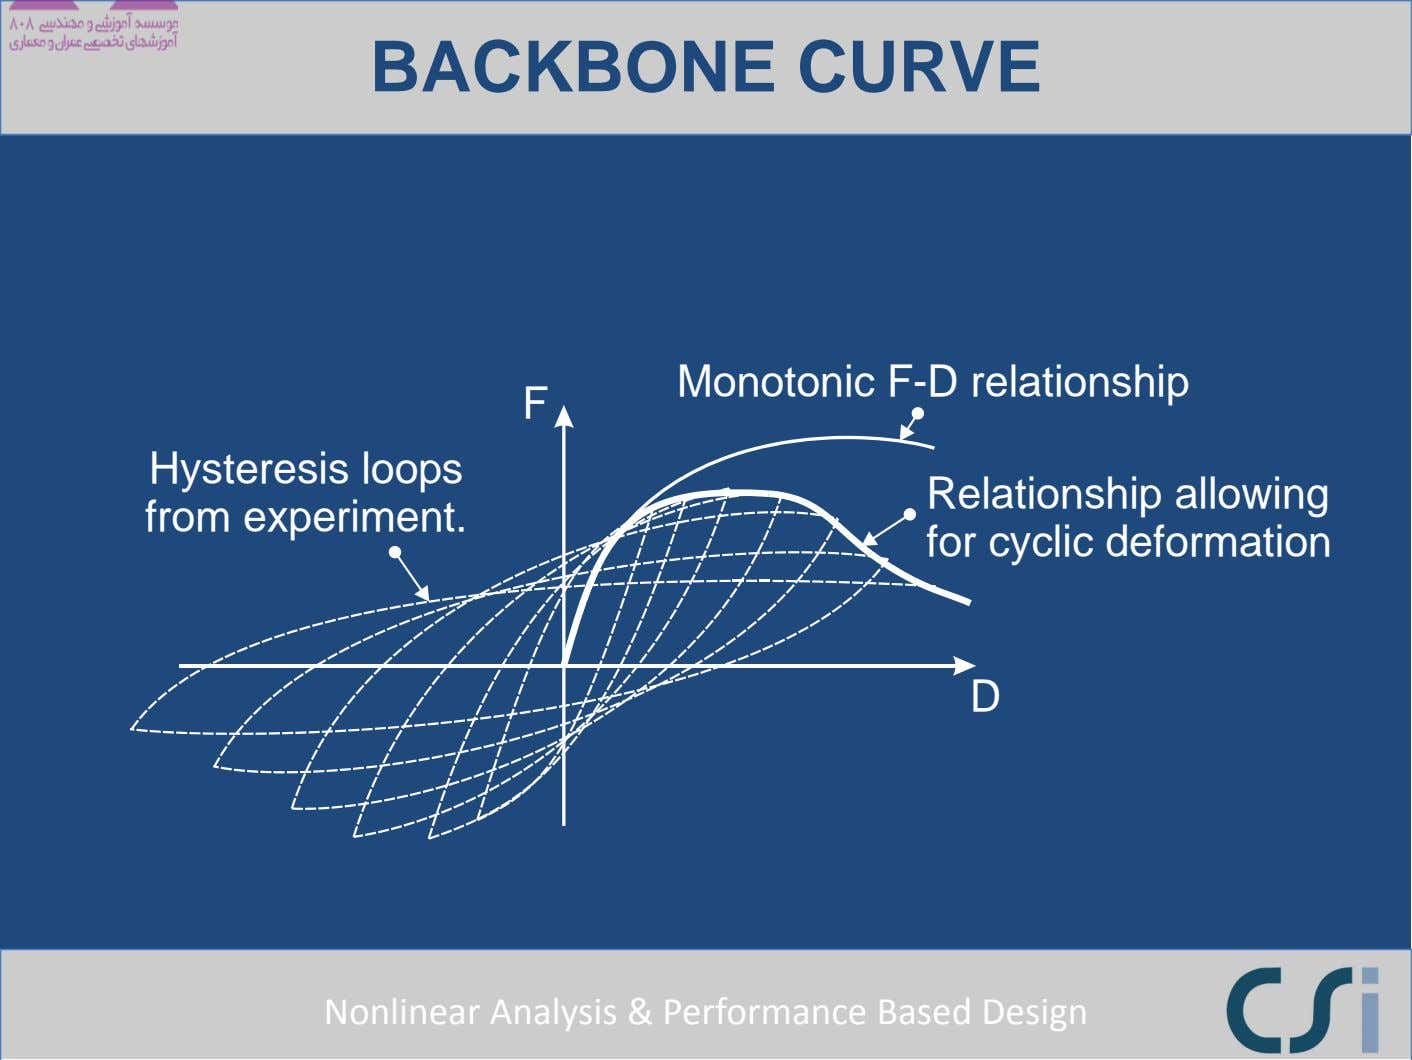 BACKBONE CURVE Monotonic F-D relationship F Hysteresis loops from experiment. Relationship allowing for cyclic